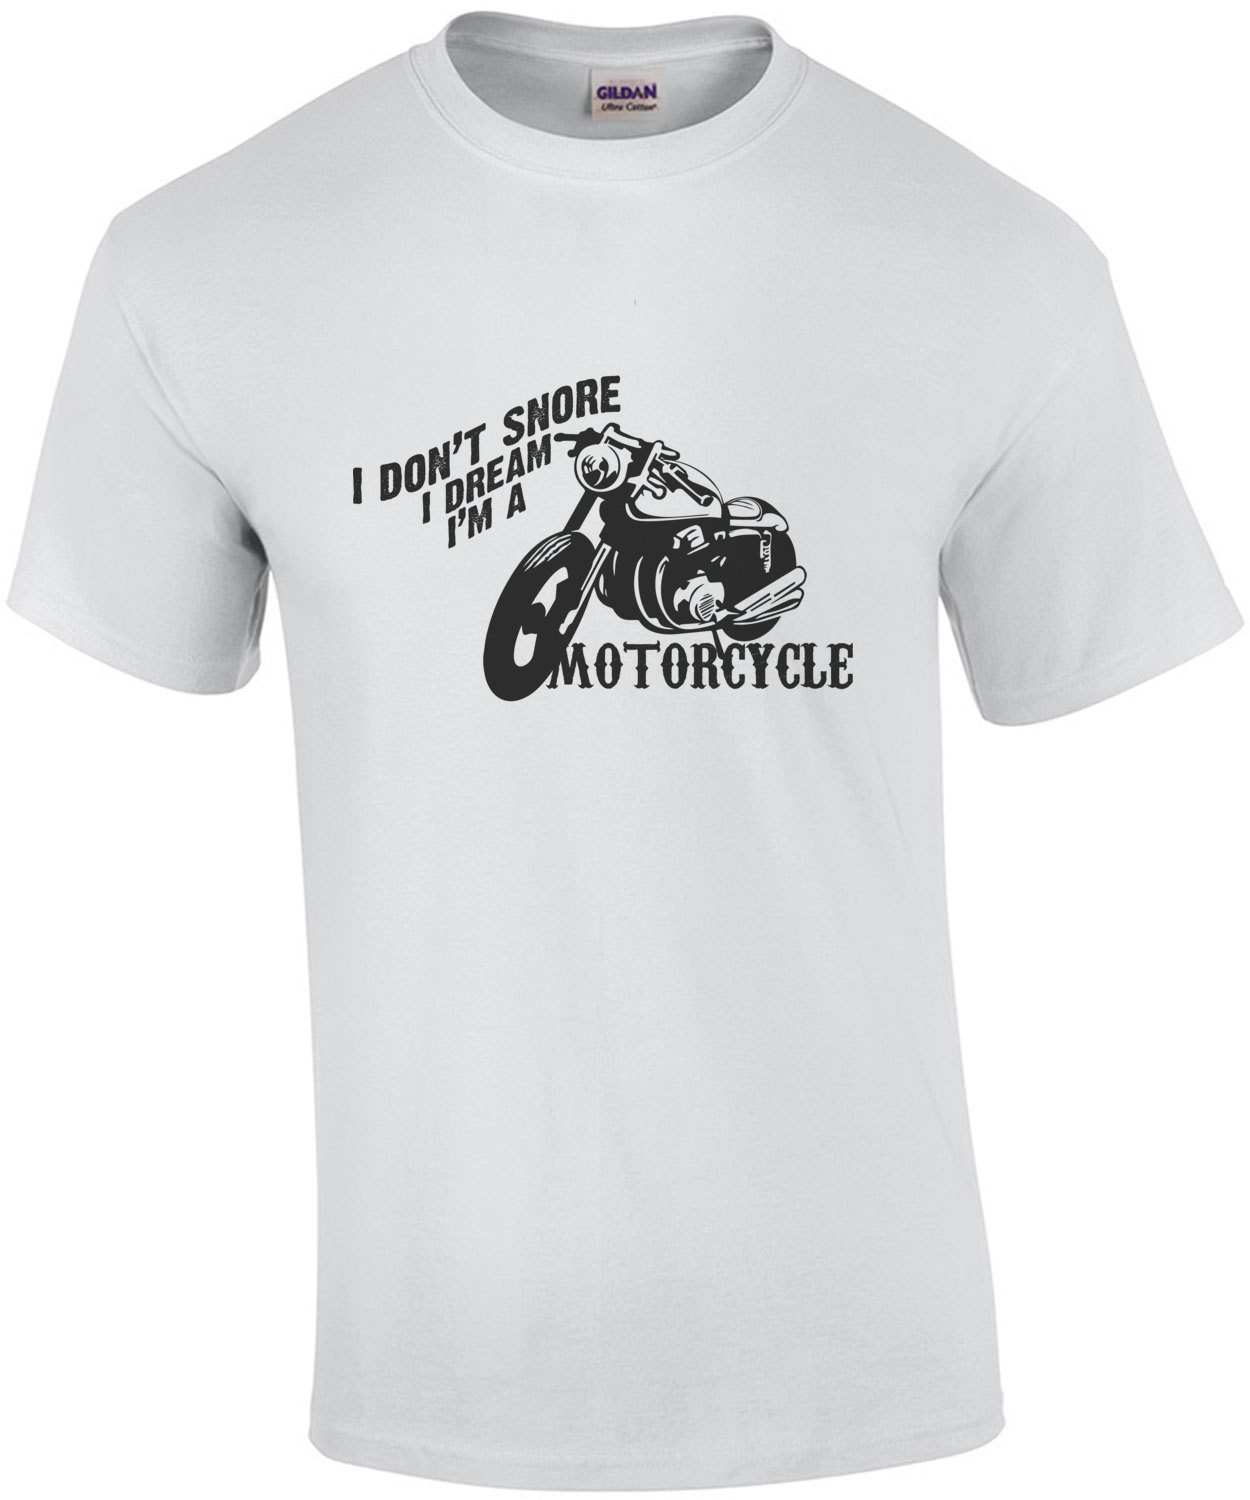 I don't snore I dream I'm a motorcycle - biker / motorcycle t-shirt